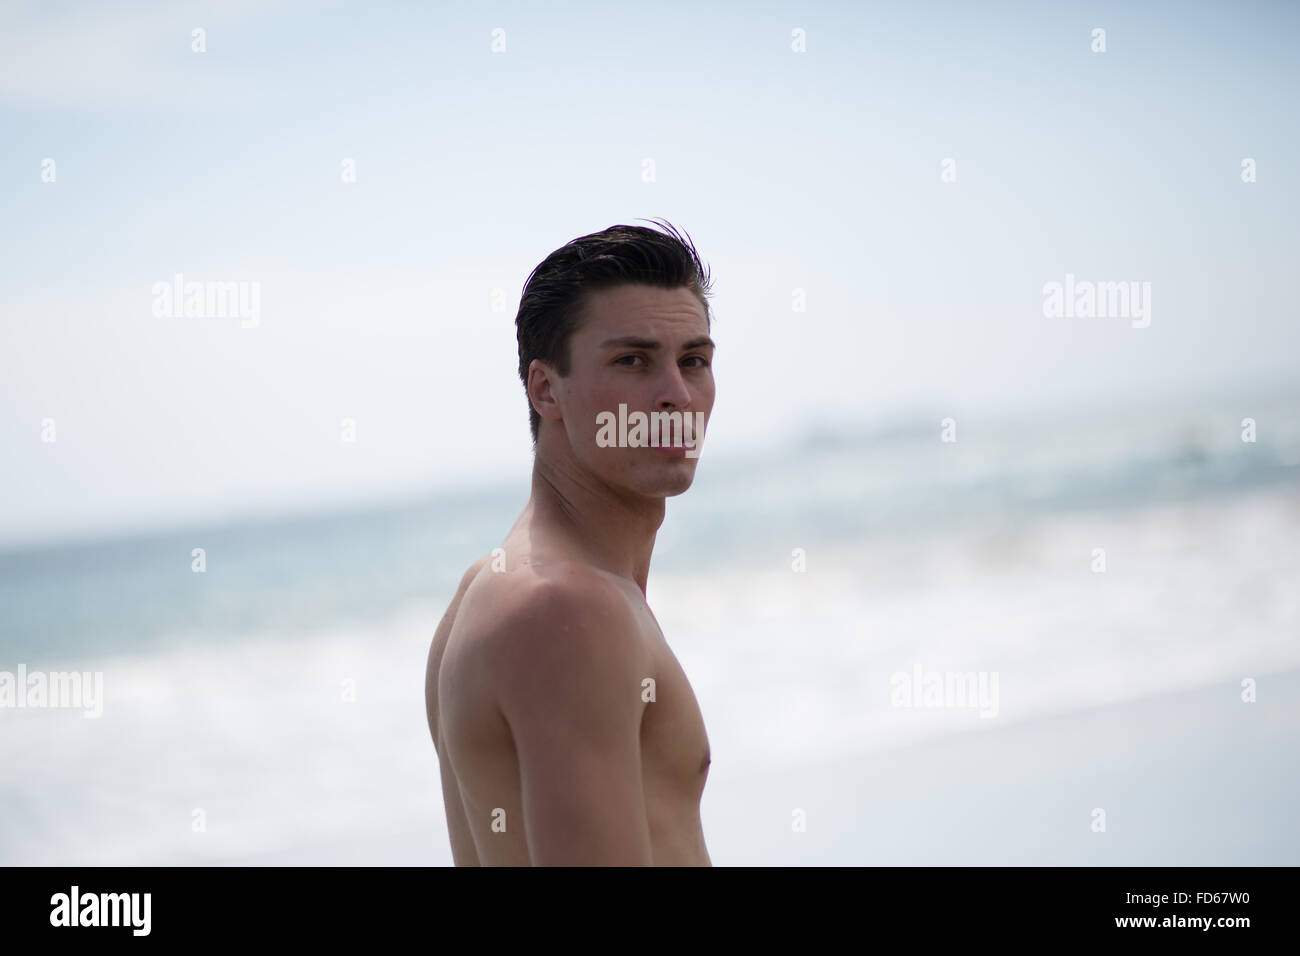 Portrait Of Handsome Young Man Standing At Beach Photo Stock